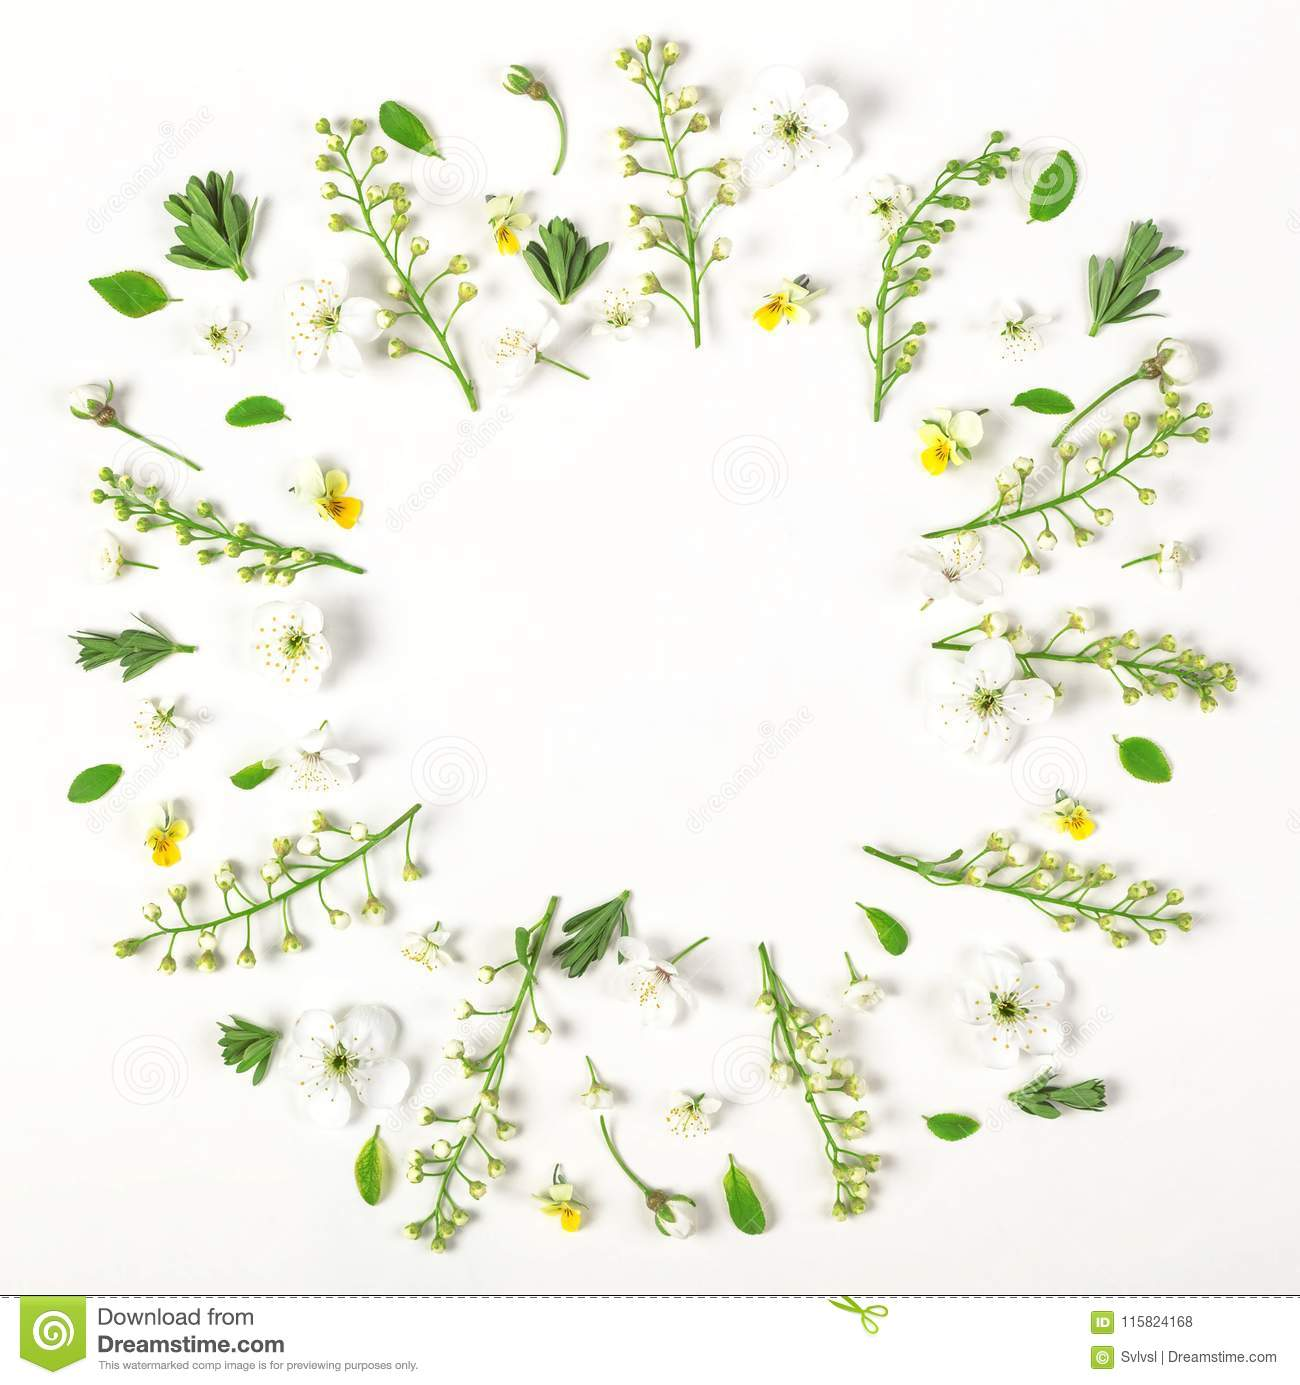 Round frame wreath made of spring flowers and leaves isolated on white background. Flat lay.